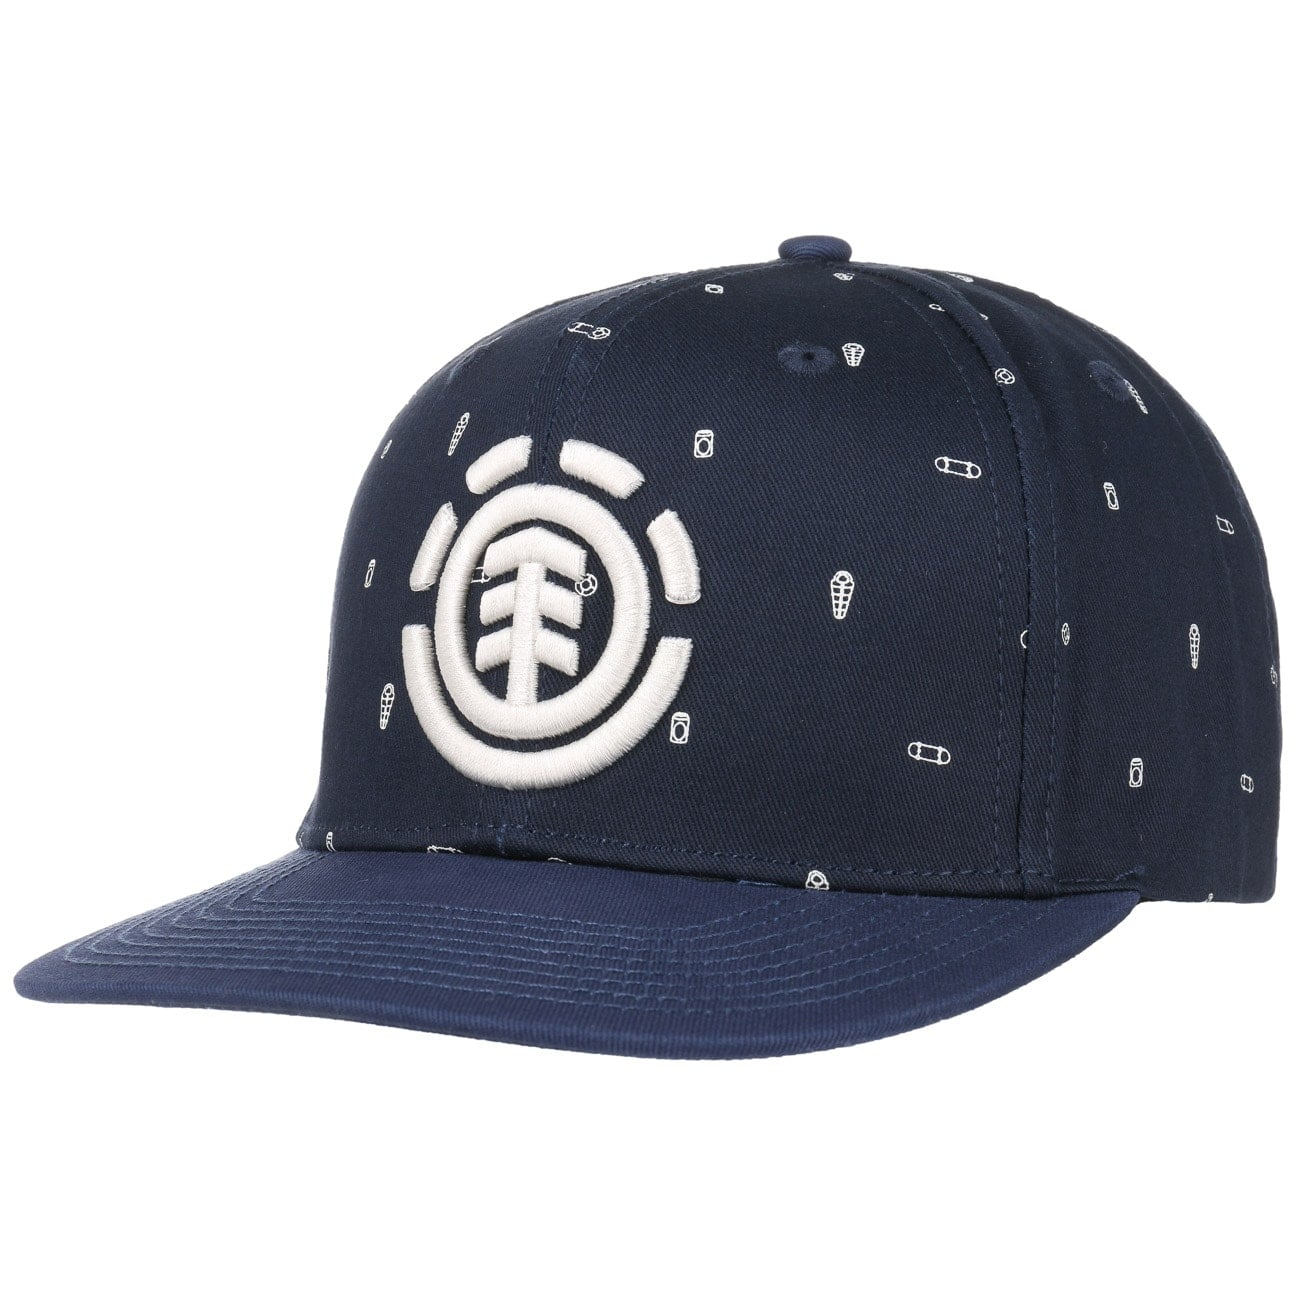 Gorra Knutsen Allover Snapback by element  gorra de baseball